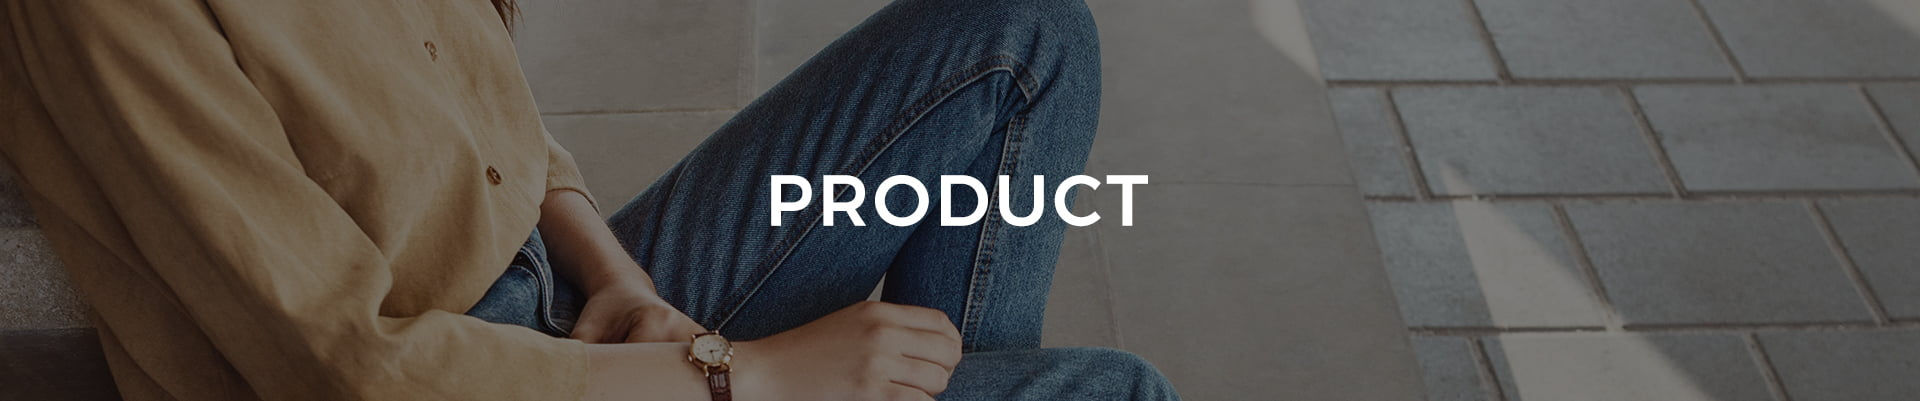 3-Product_02